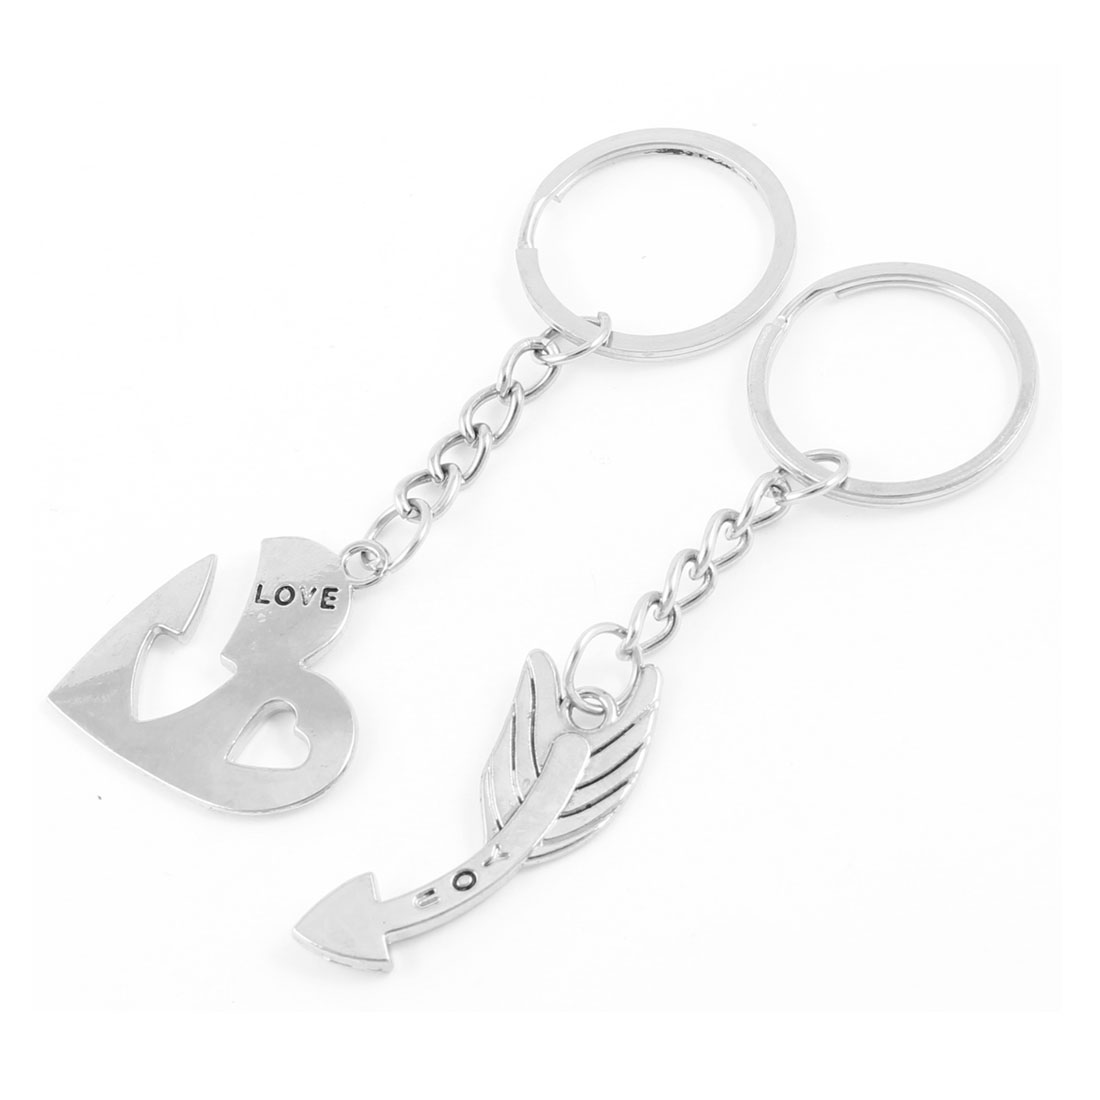 True Love Couples Lovers Key Rings Arrow Heart Decoration 2 Pcs